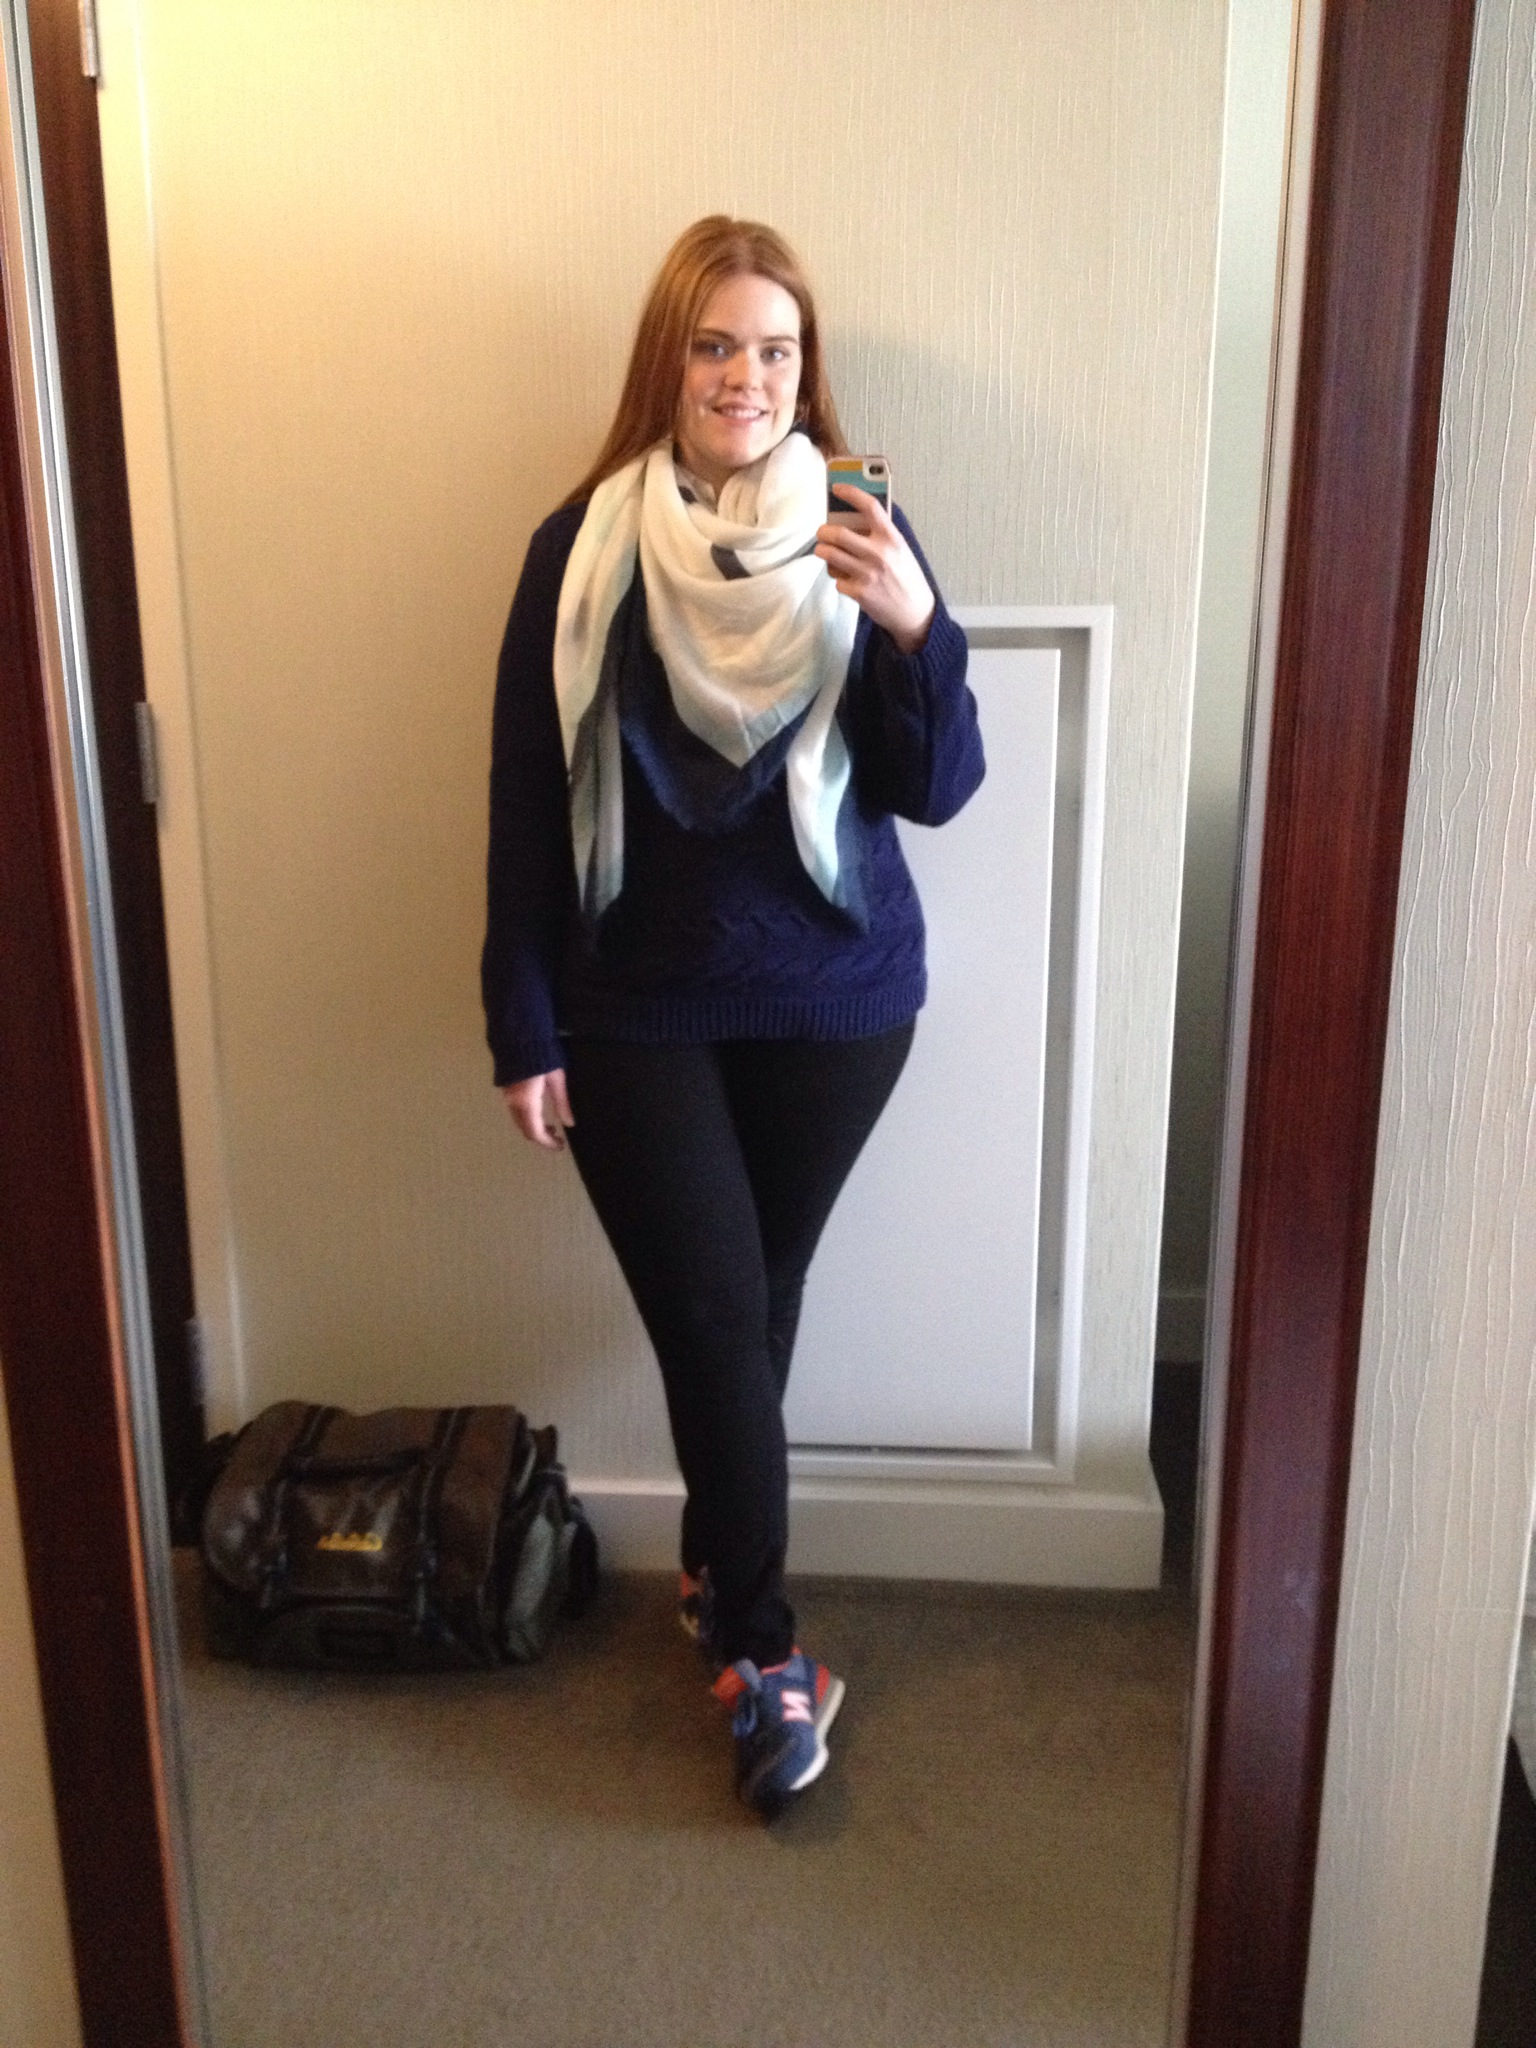 fashion blogger scarf travel lookbook new balance sneakers outfit ootd navy fisherman sweater